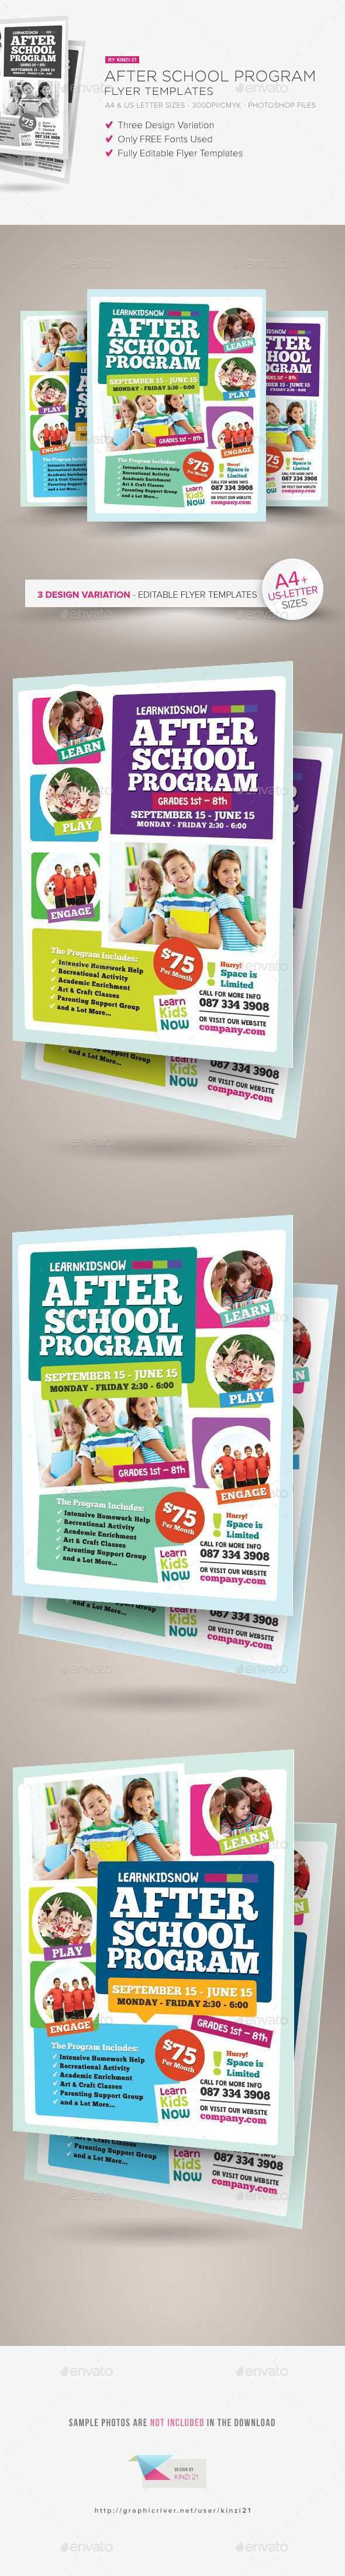 89 Adding After School Flyer Template Free Layouts by After School Flyer Template Free